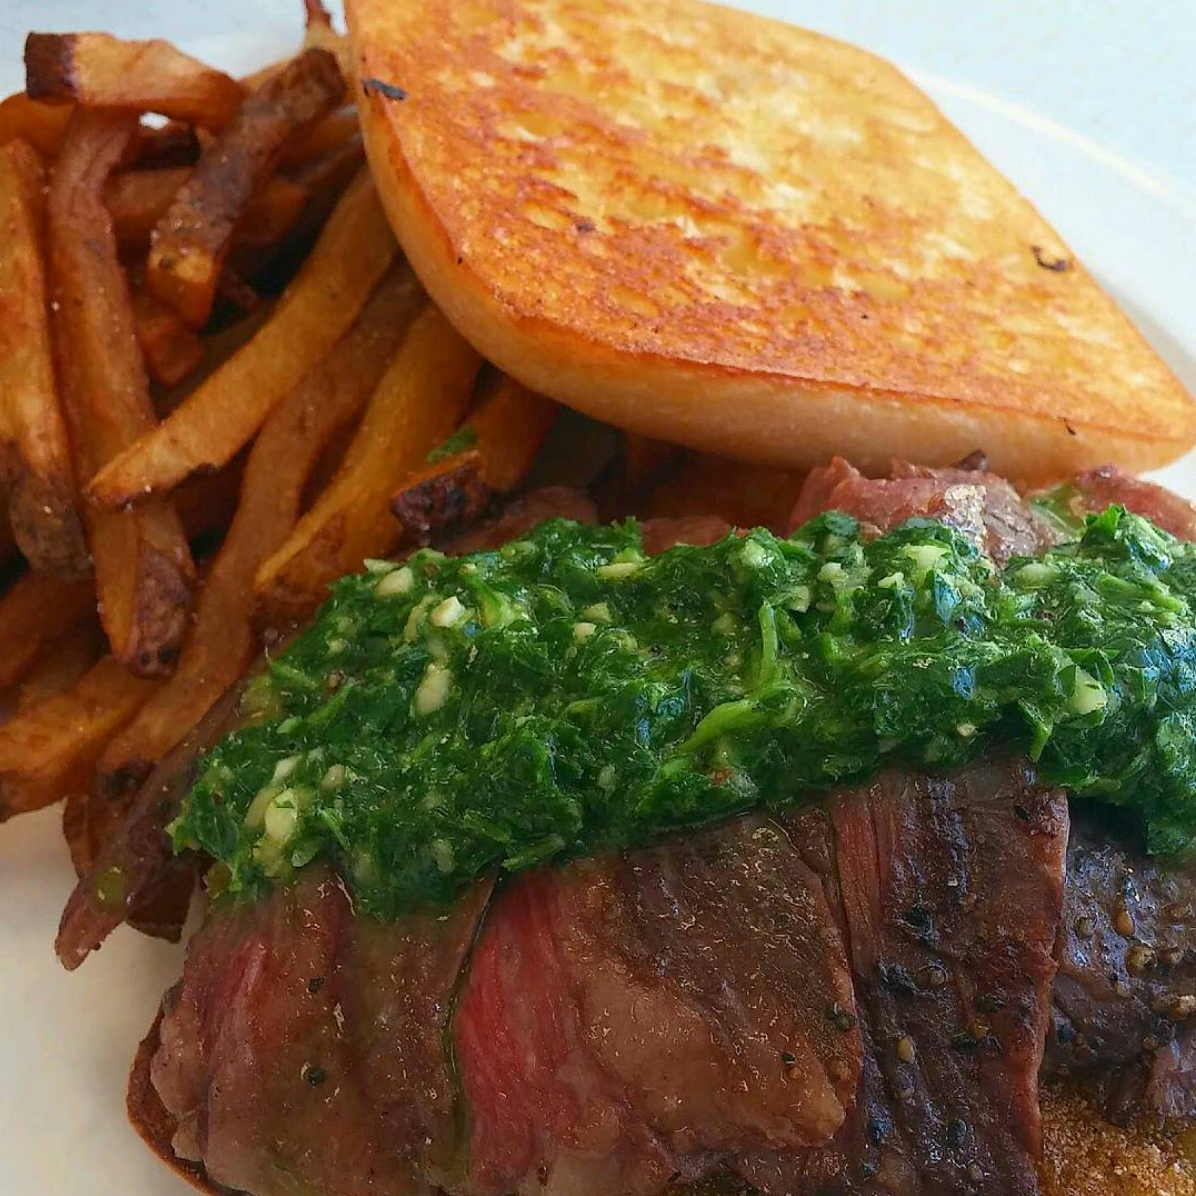 Skirt Steak Sammich - Med rare marinated skirt steak served atop fried green tomatoes and topped with chimichurri